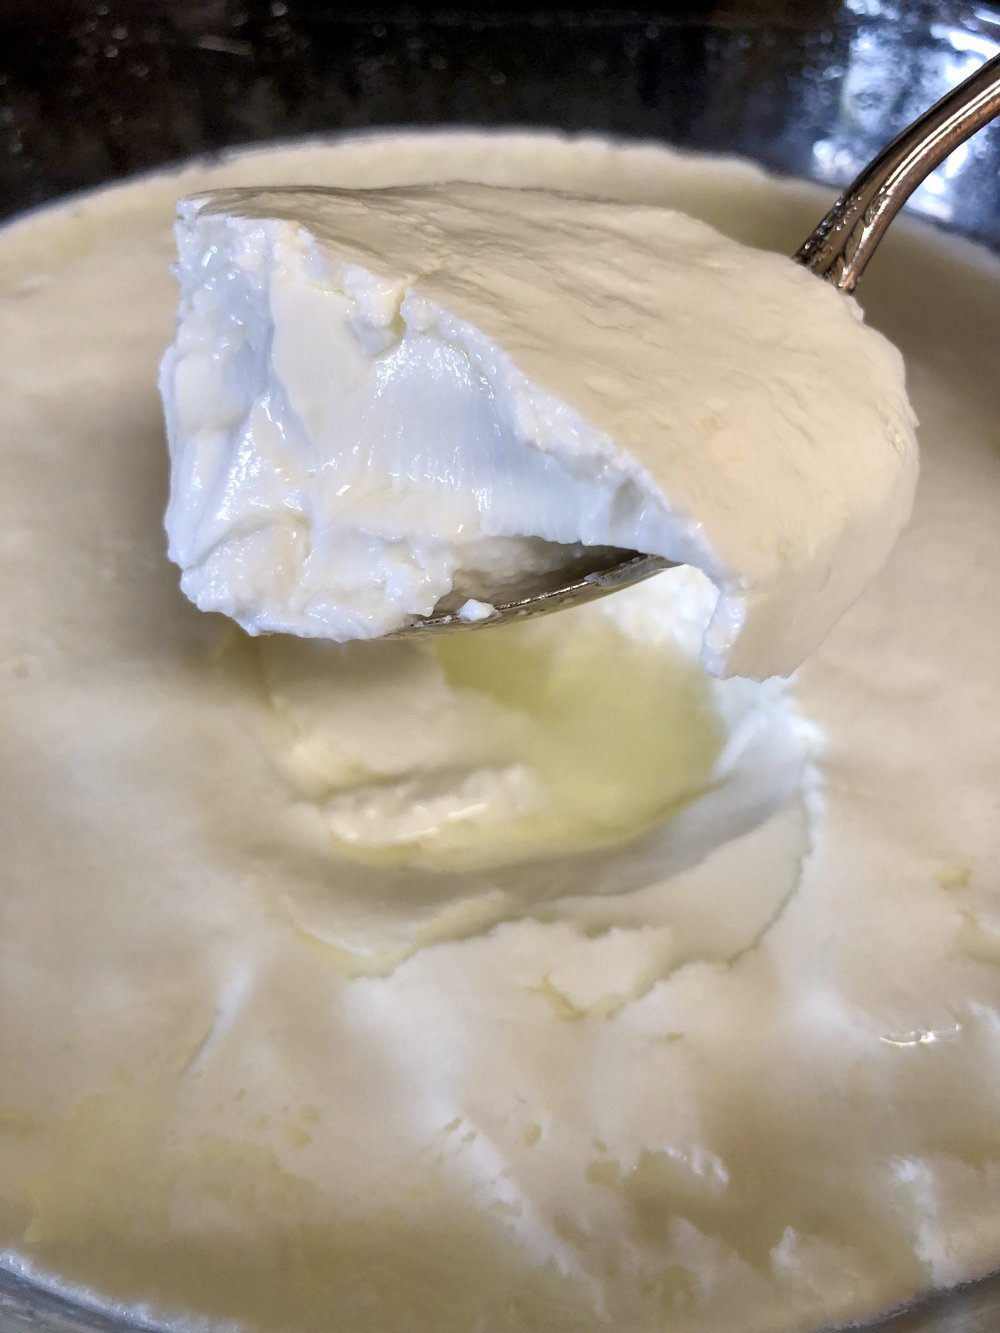 12-15 hours later, beautiful curd!